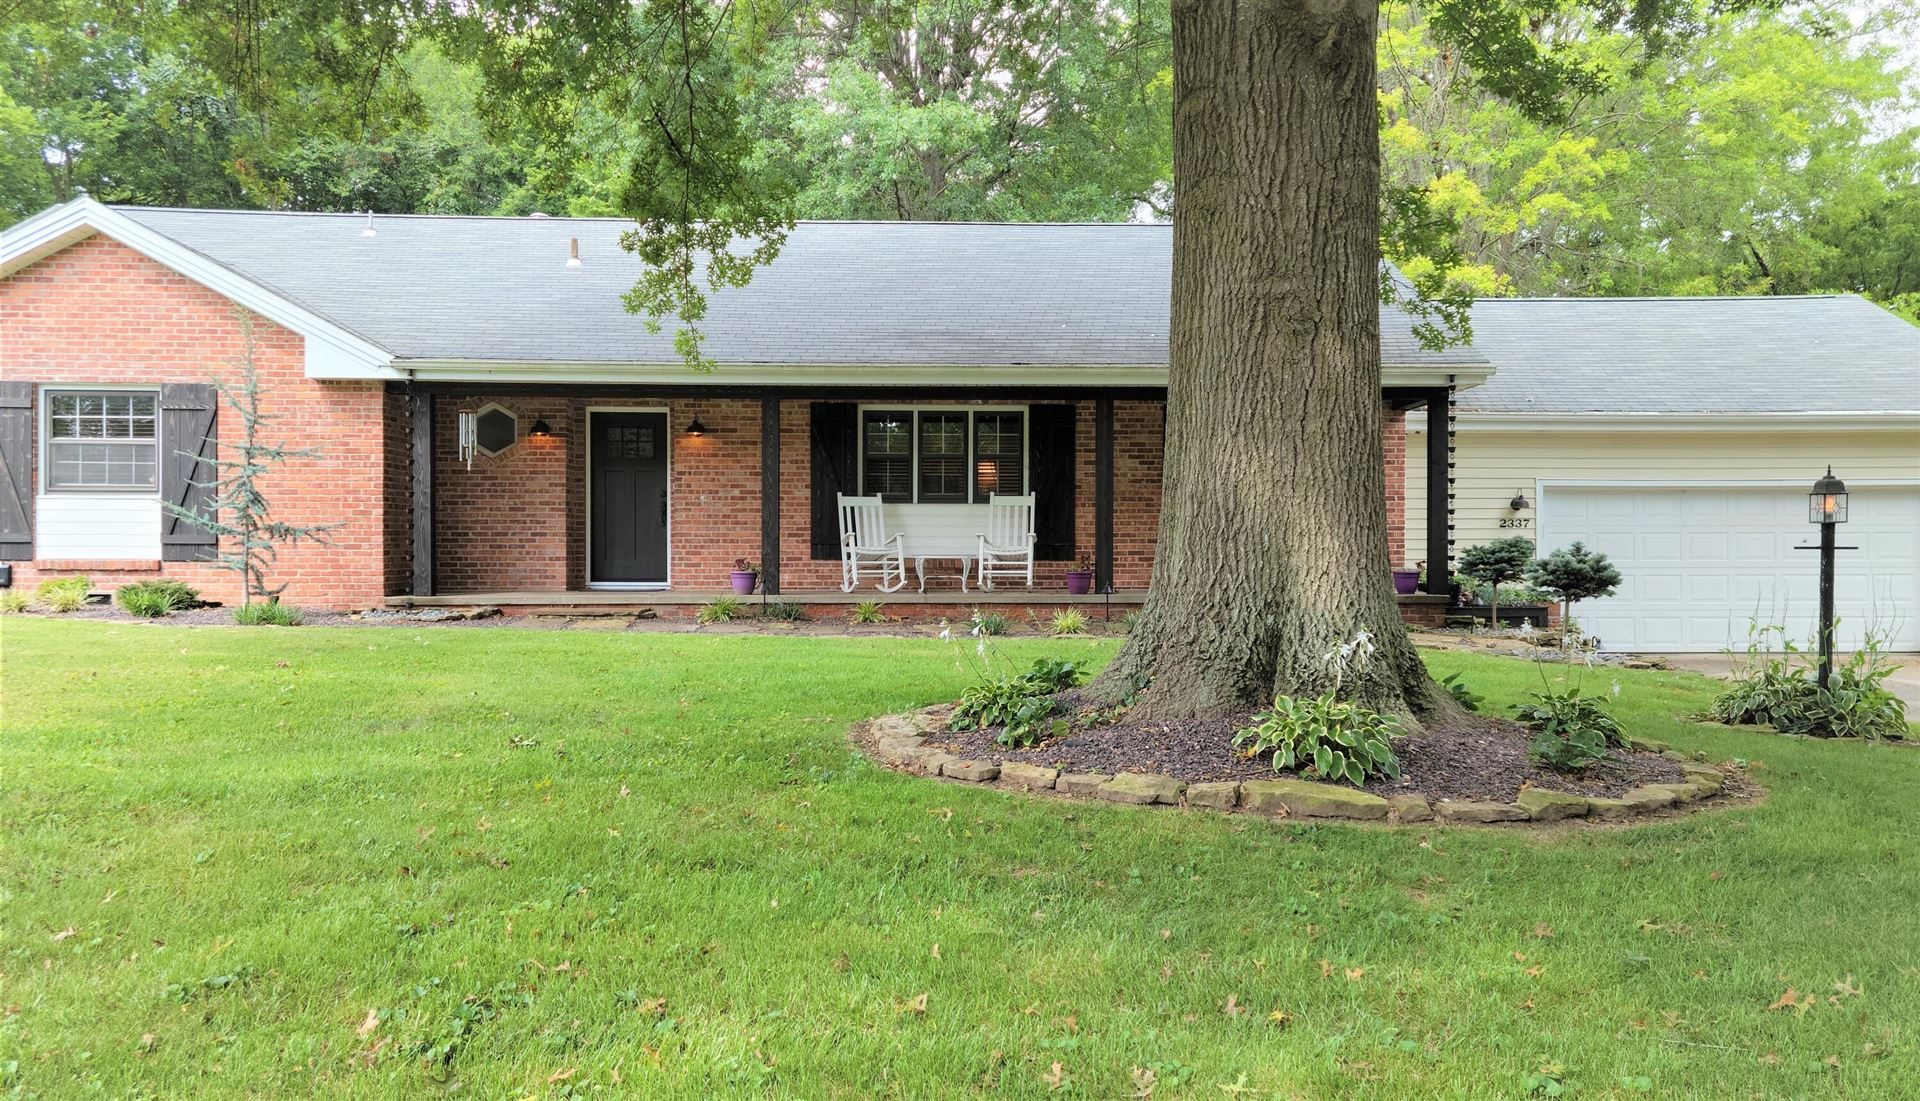 Photo of 2337 South Mayfair Avenue, Springfield, MO 65804 (MLS # 60201918)